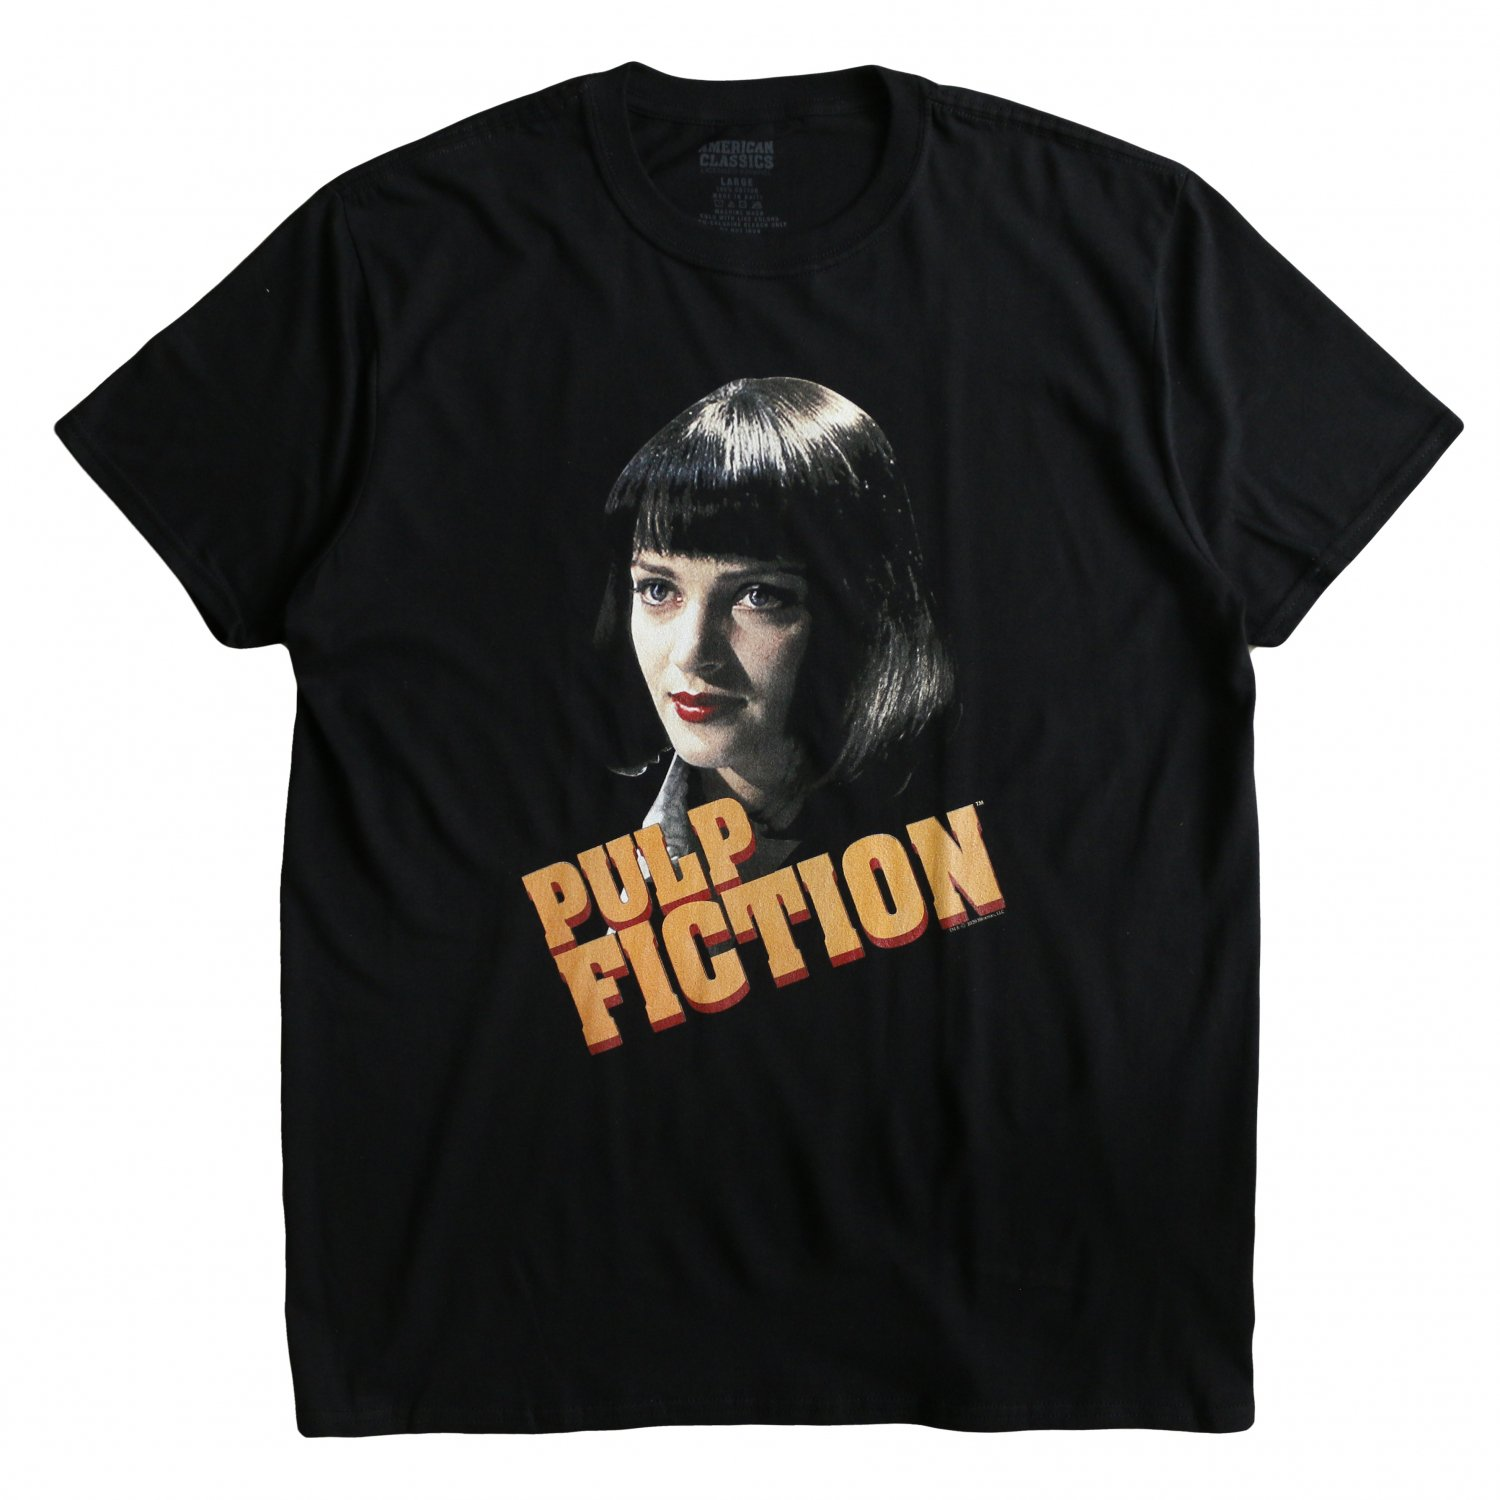 <img class='new_mark_img1' src='https://img.shop-pro.jp/img/new/icons8.gif' style='border:none;display:inline;margin:0px;padding:0px;width:auto;' />Movie Tee / S/S TEE PULP FICTION